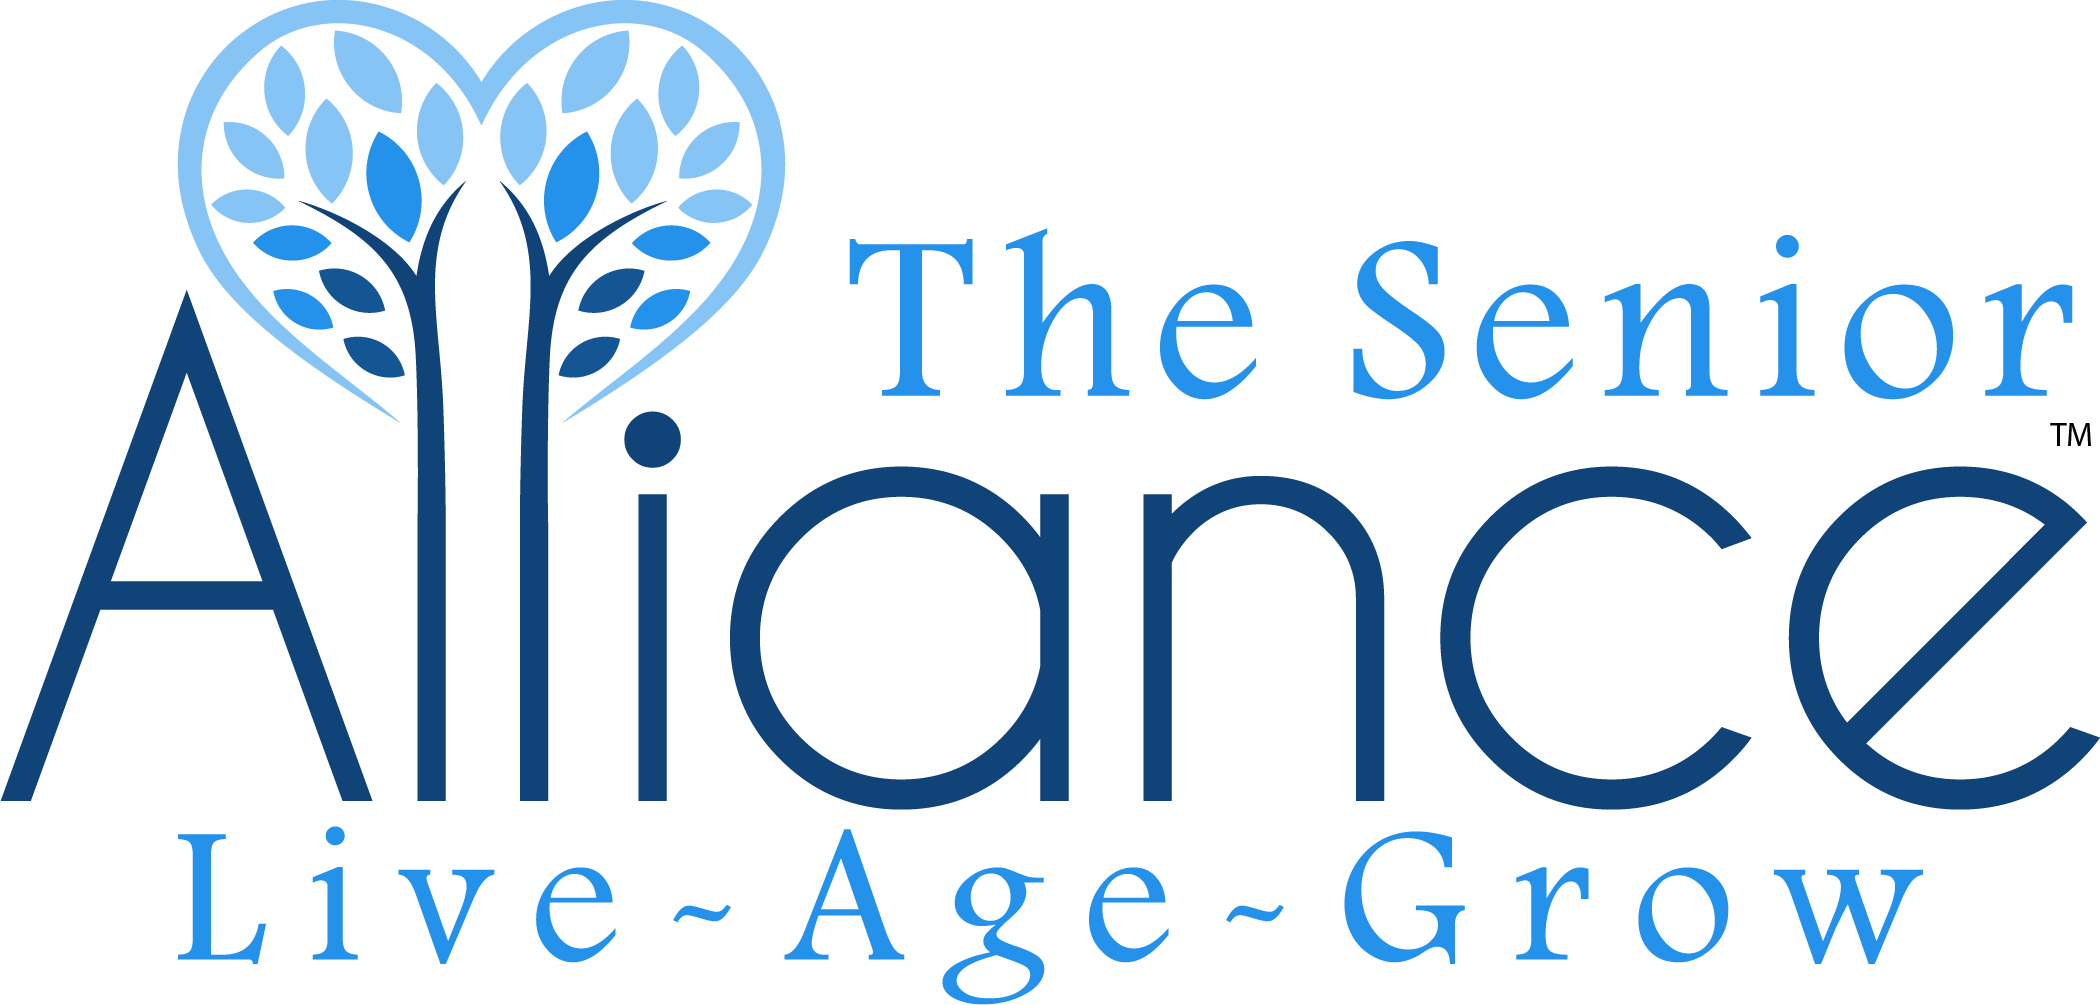 The Senior Alliance (Vendor)